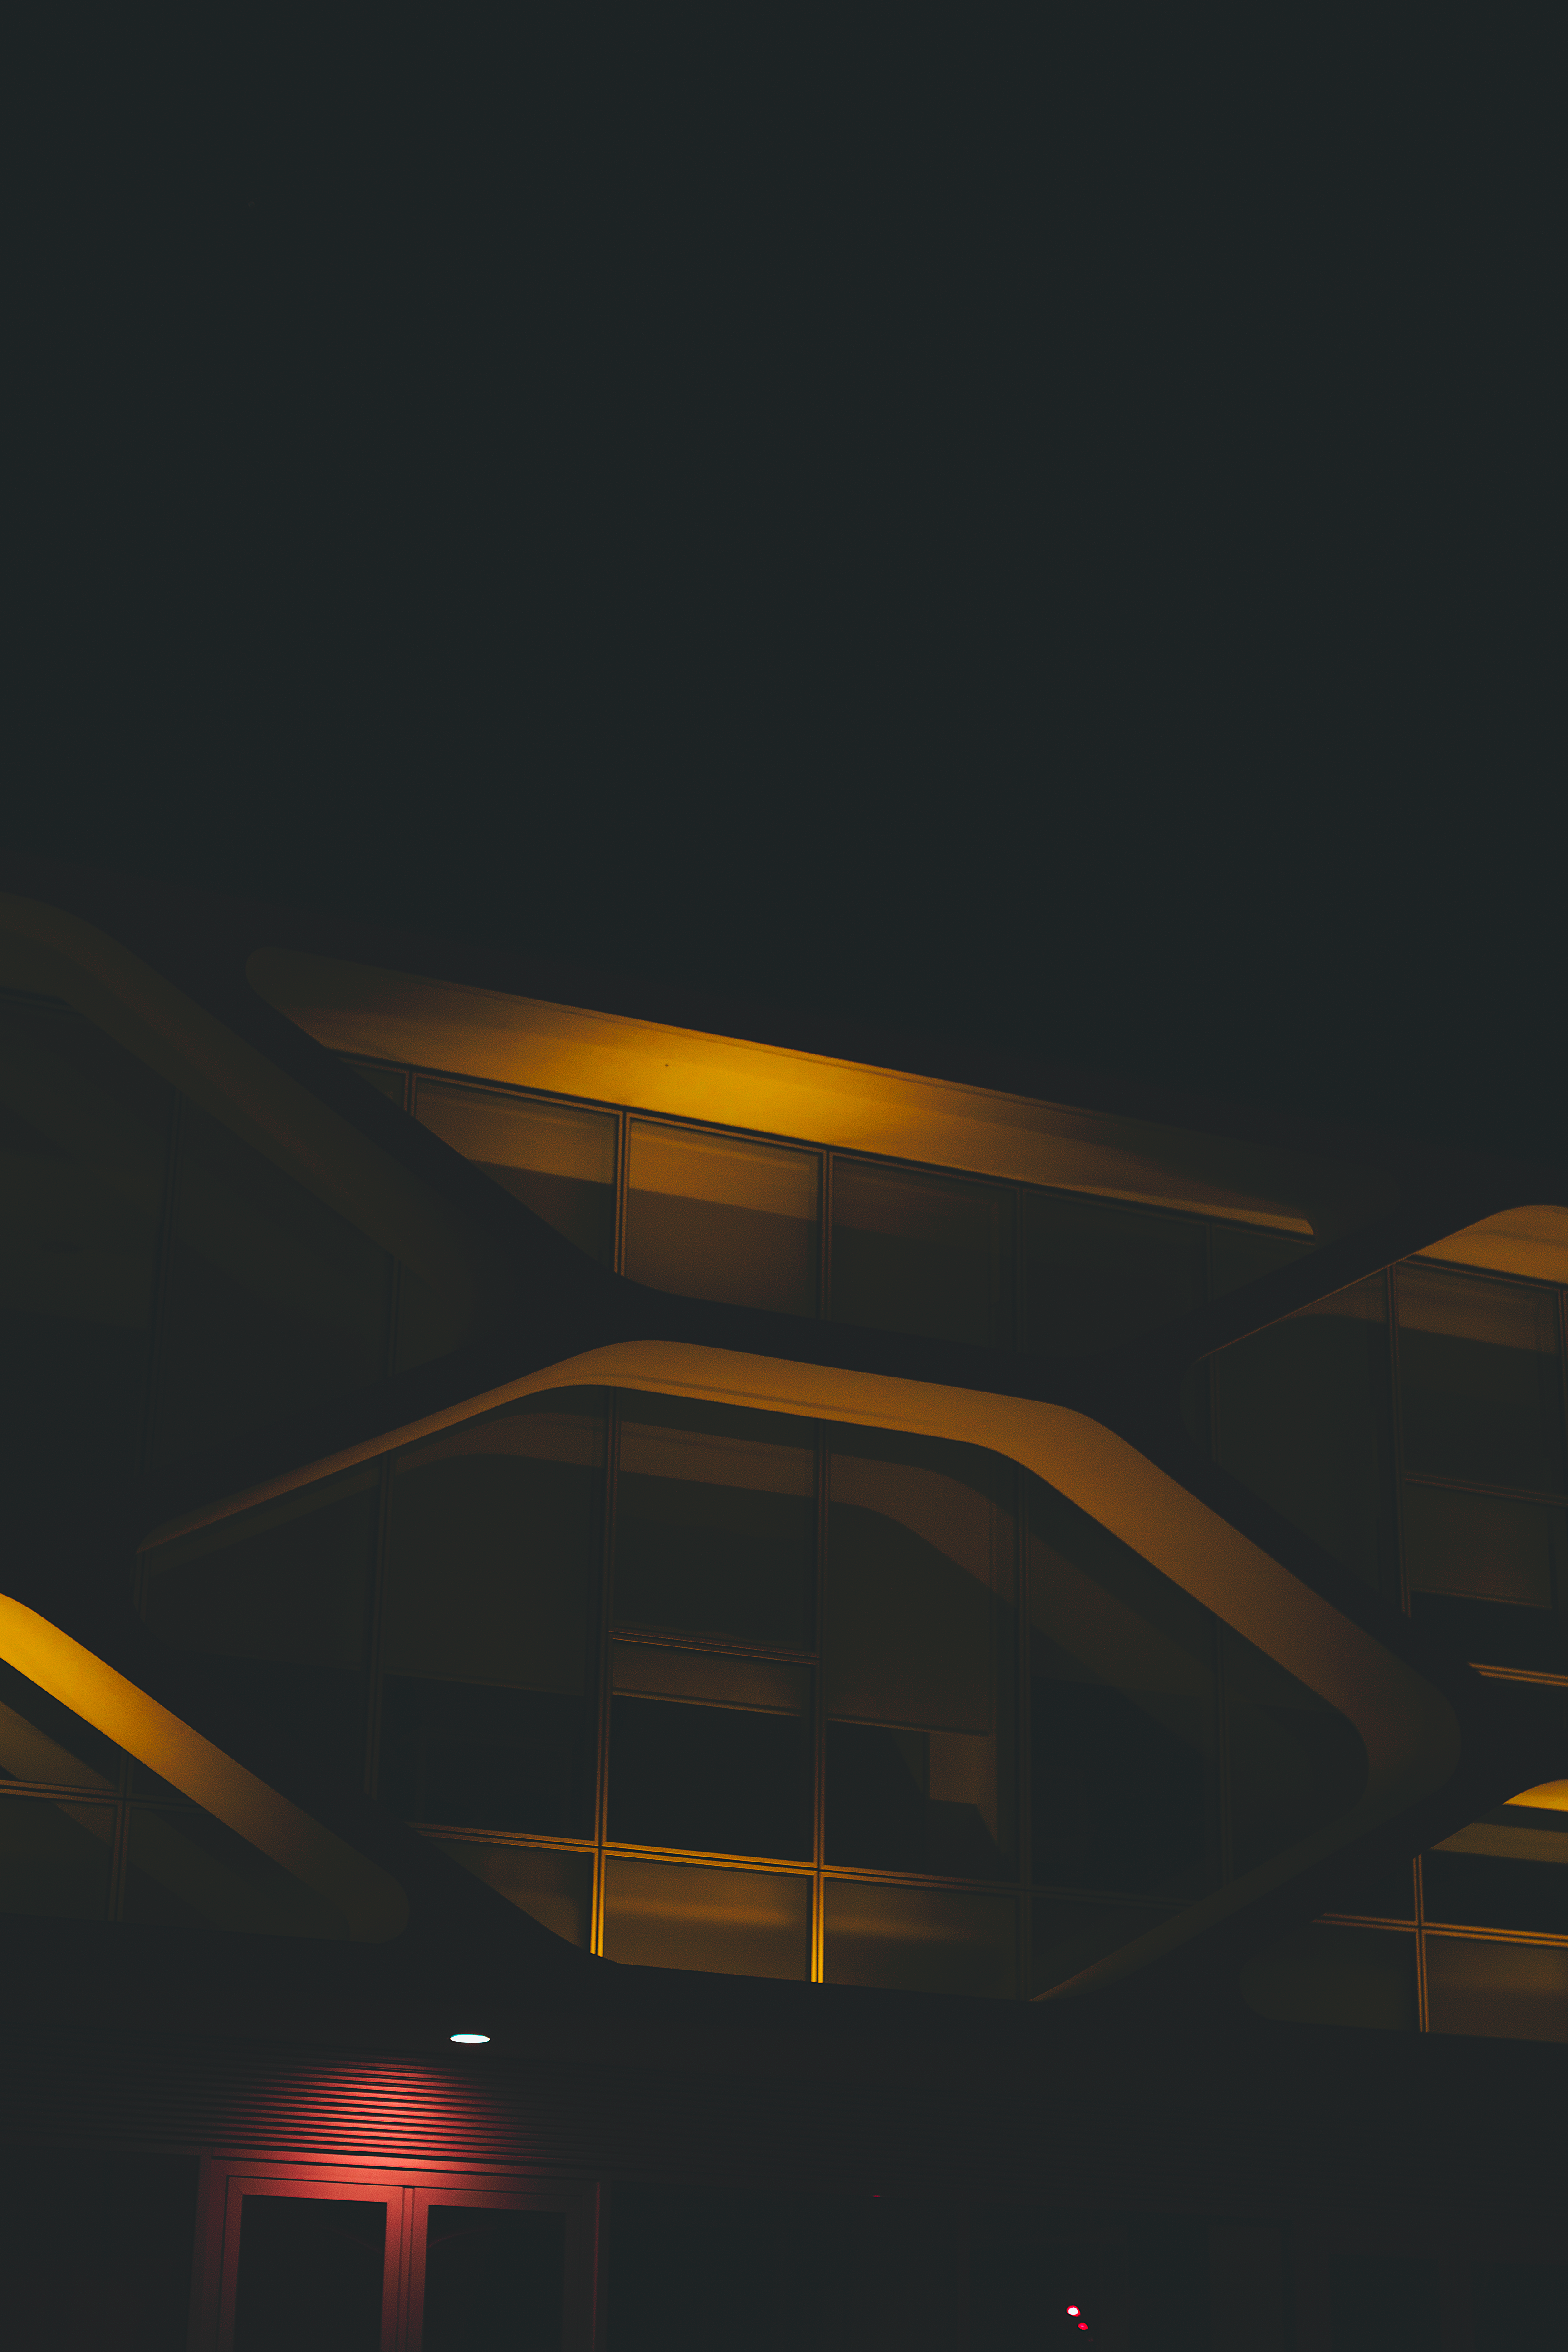 Black and Brown Building, Light, Outdoors, Night time, Night photography, HQ Photo